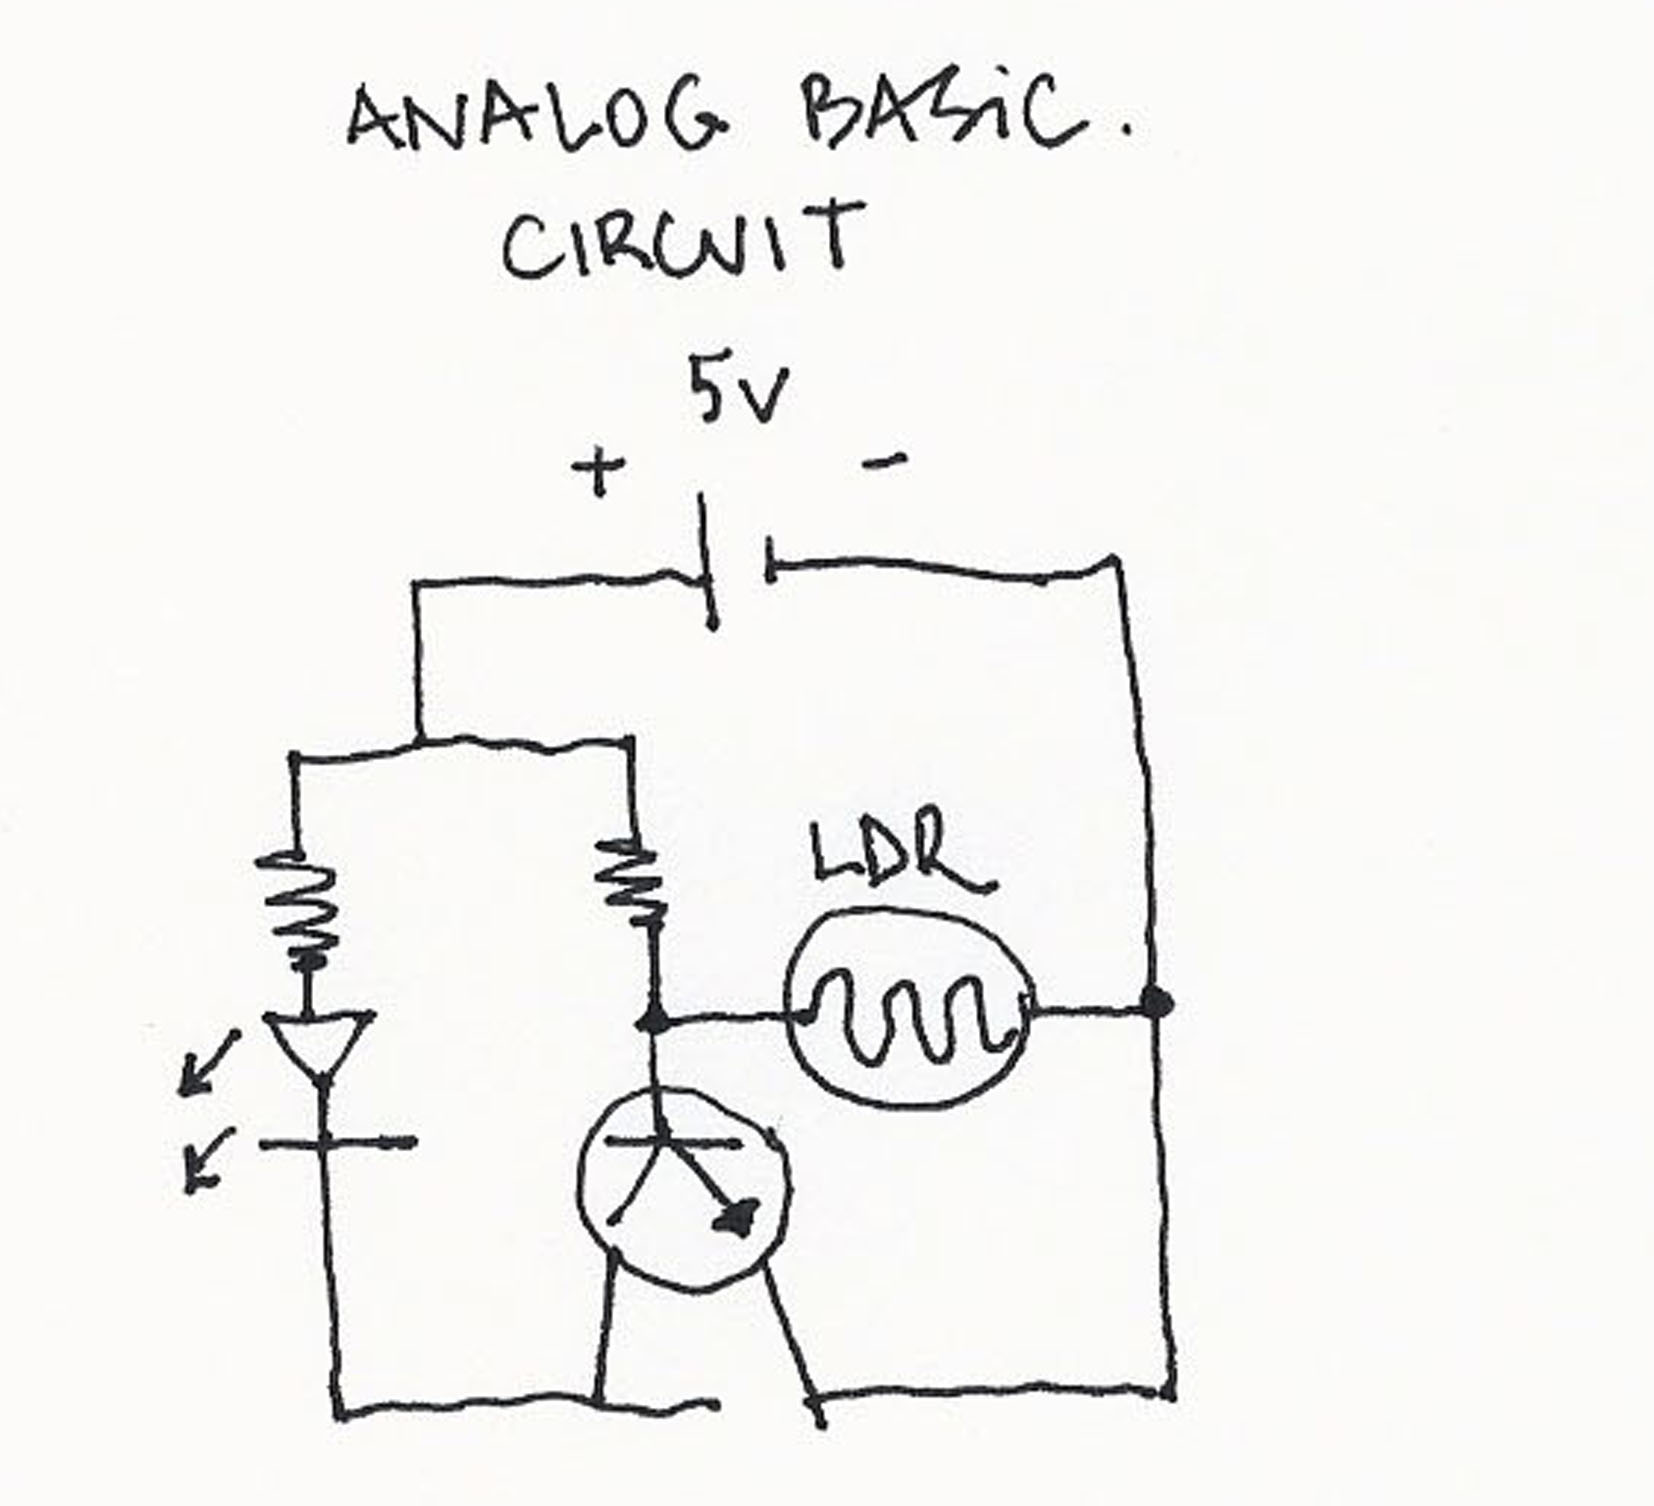 Raquel Gallego Profile Is Light On The Ldr It Allows Current To Pass Through Circuit When There Resistance Low That Activates Transistor And Means We Have A 1